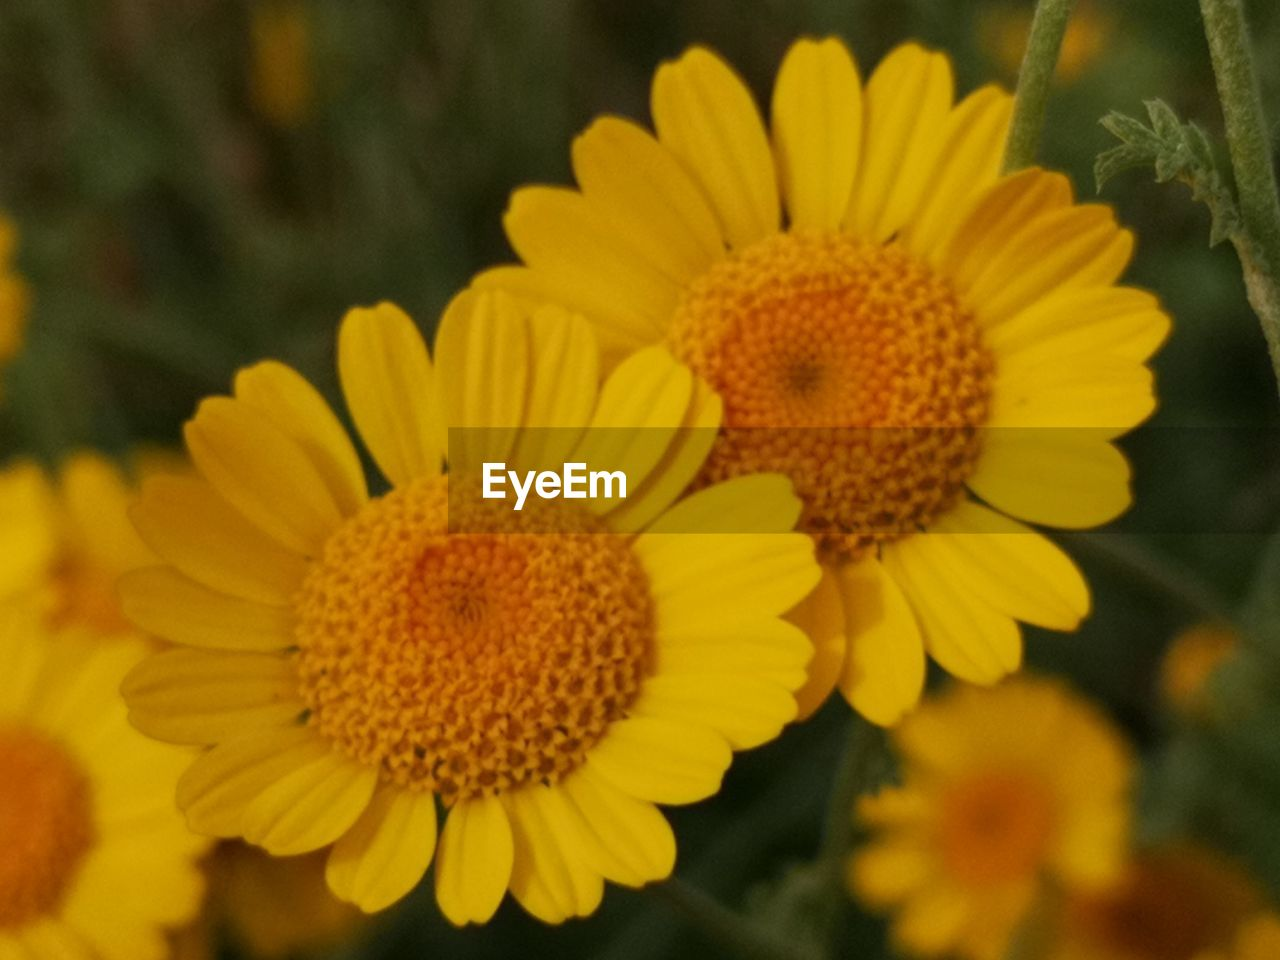 flower, flowering plant, flower head, yellow, freshness, plant, vulnerability, petal, growth, inflorescence, fragility, beauty in nature, close-up, pollen, focus on foreground, no people, nature, sunflower, day, outdoors